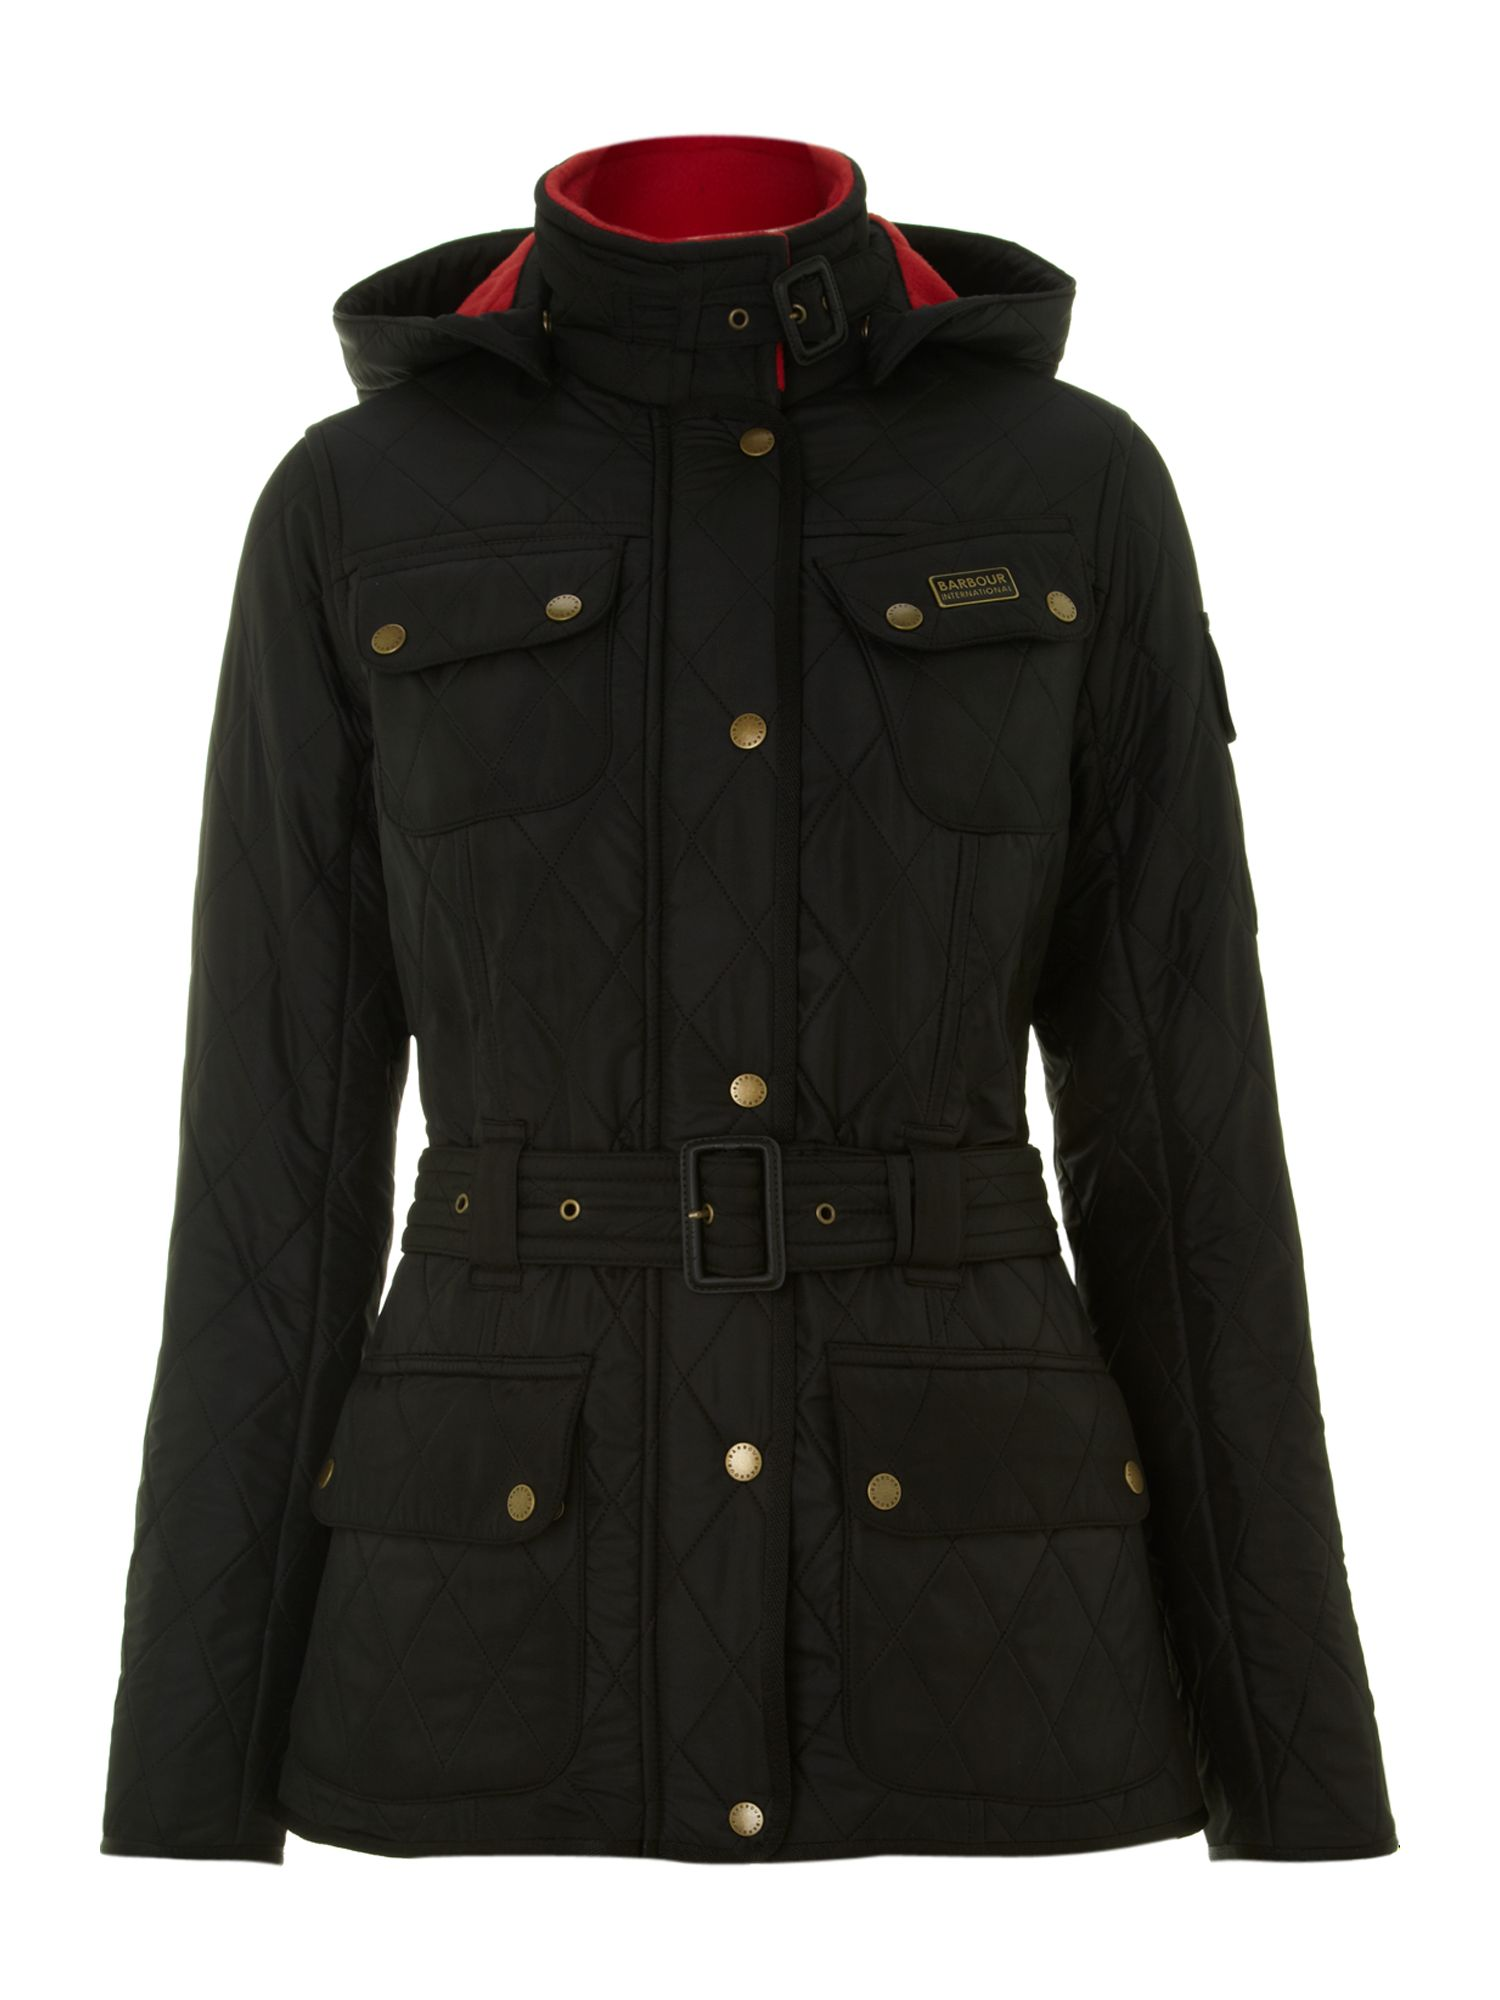 Barbour Viper international jacket with hood Black